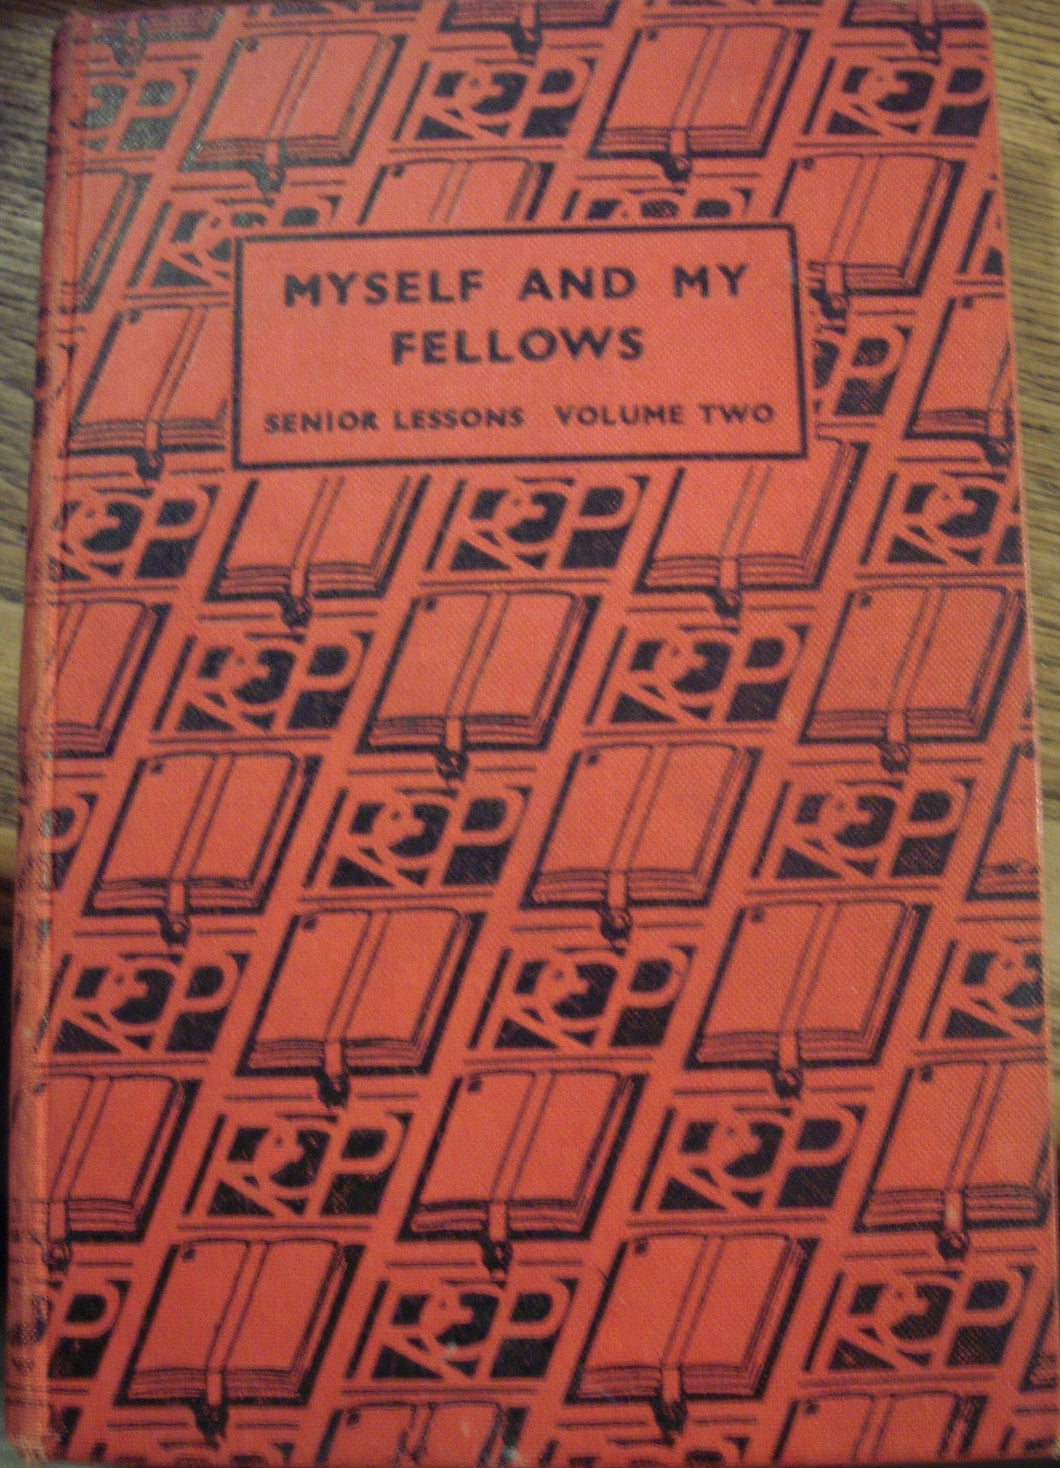 Myself and My Fellows Senior Lessons on the Agreed Syllabuses - VOLUME TWO (Fourth Revised Edition) [Hardcover] Cox, L E and Hayes, E H